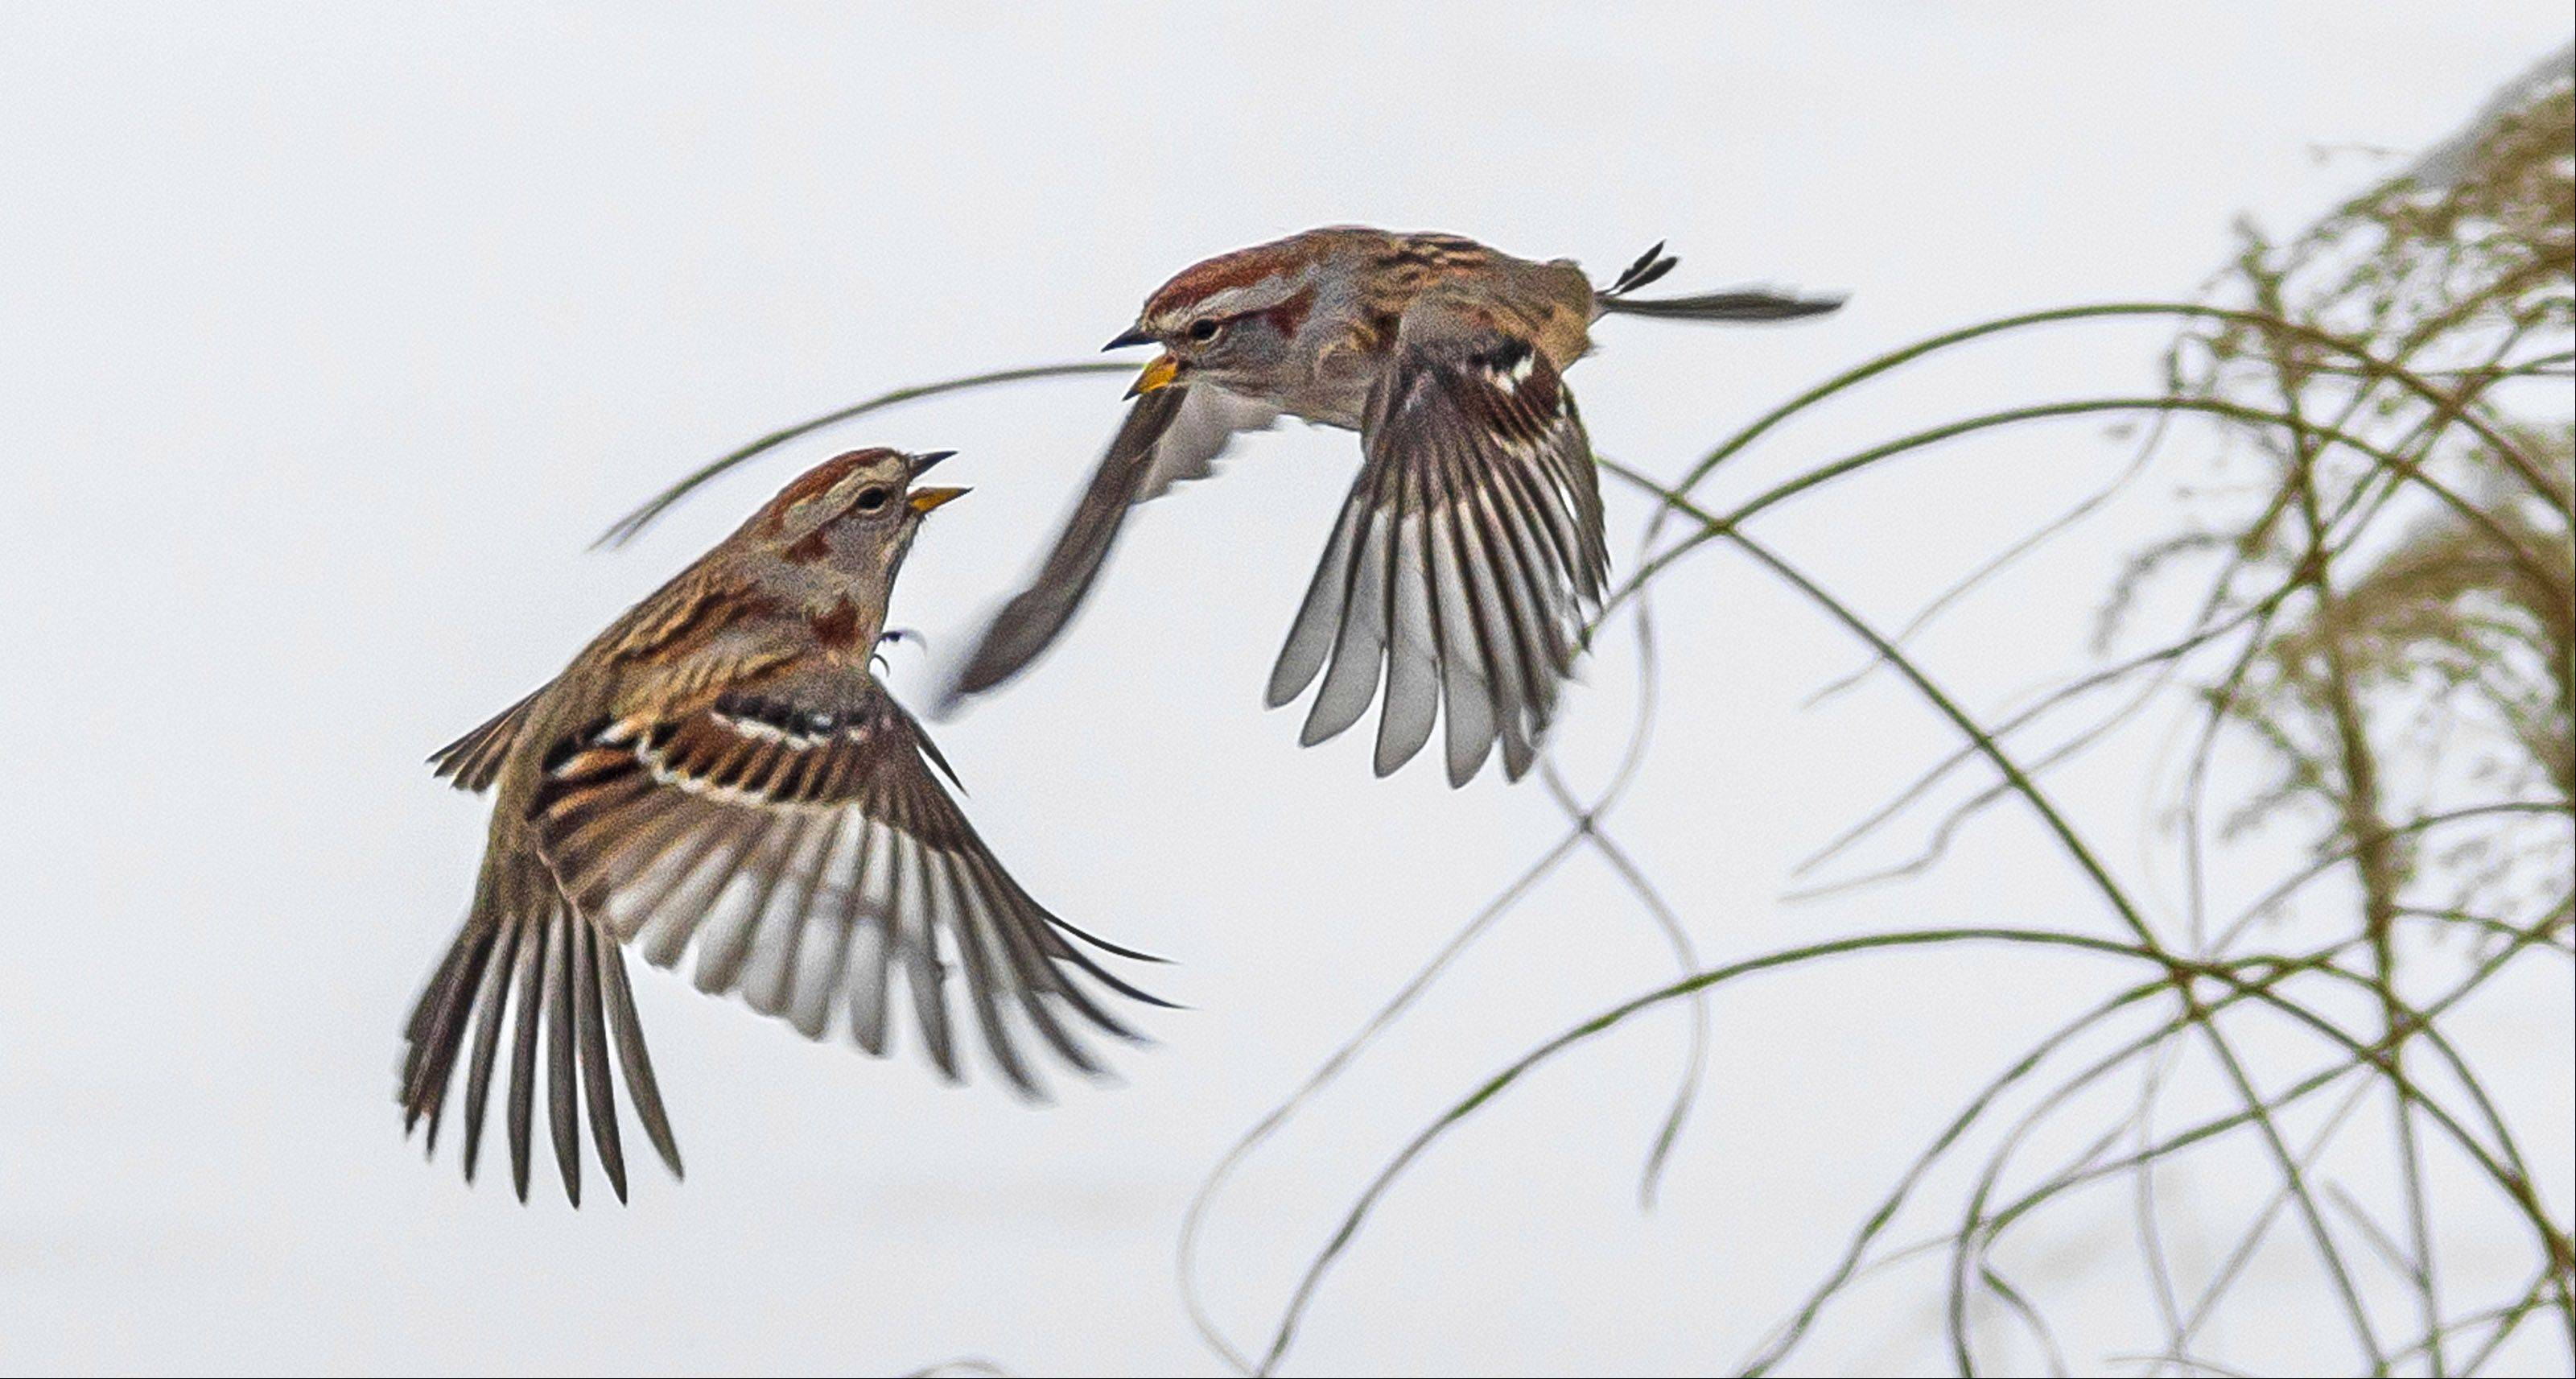 Dori Eldridge of Naperville won first prize in our February Photo Finish contest with this image of an altercation between two American tree sparrows.